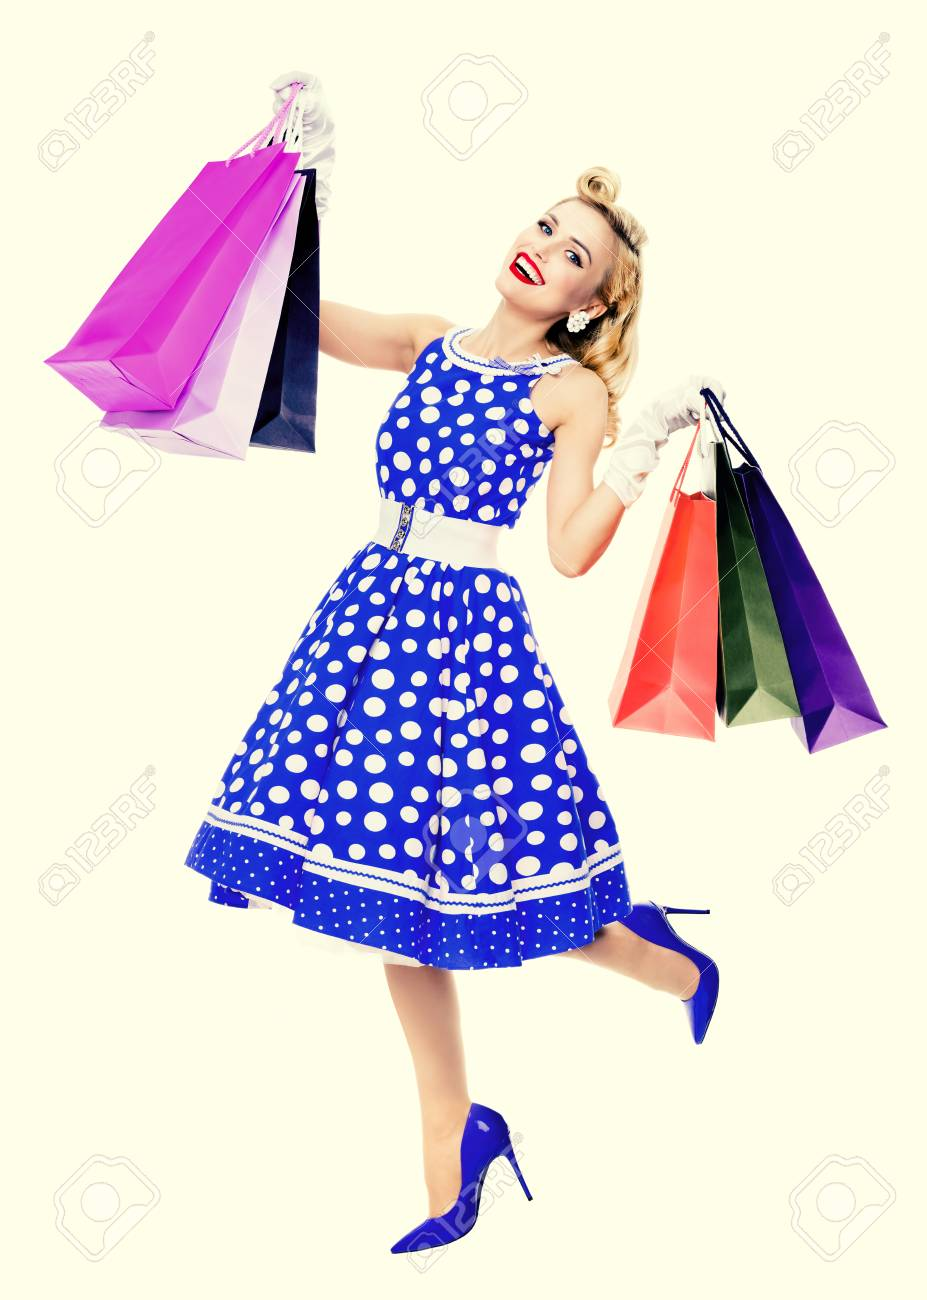 Full body portrait of woman in pin up style blue dress in polka..